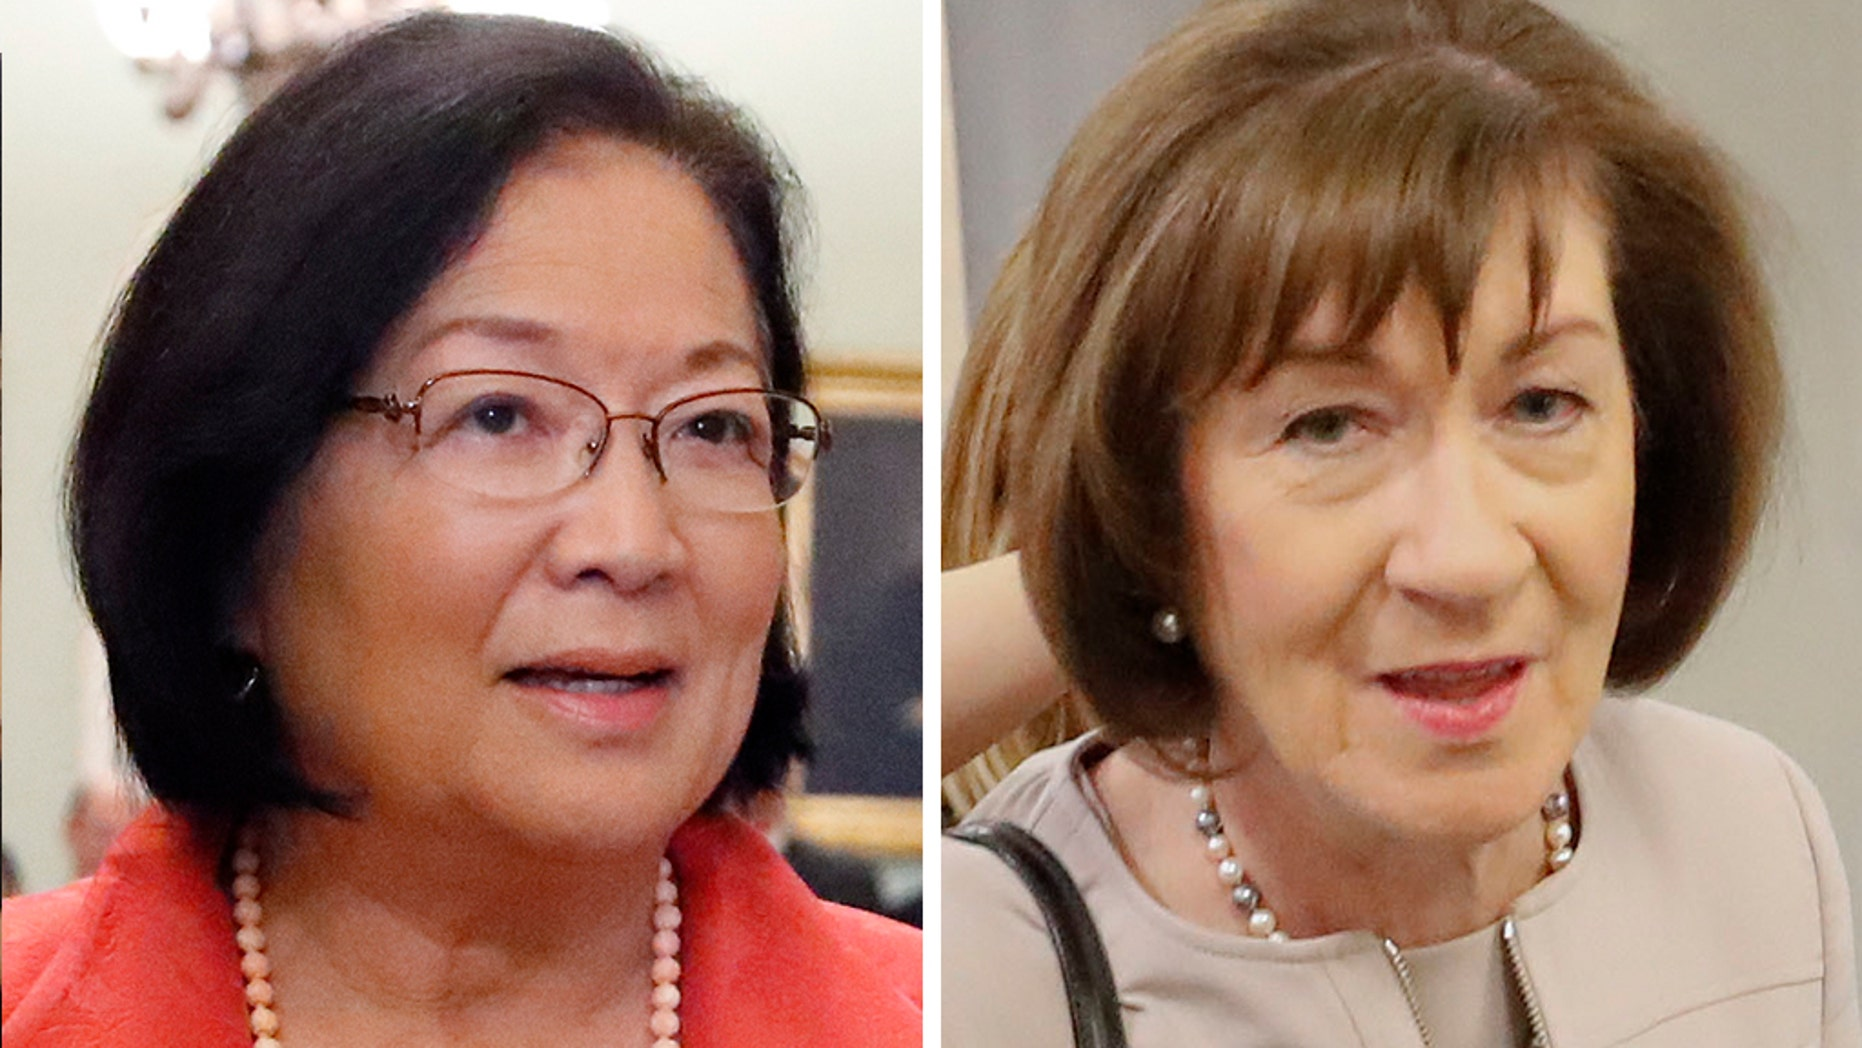 Sen. Mazie Hirono, left, said Sen. Susan Collins' reasoning for supporting Brett Kavanaugh's Supreme Court nomination was 'insulting.'